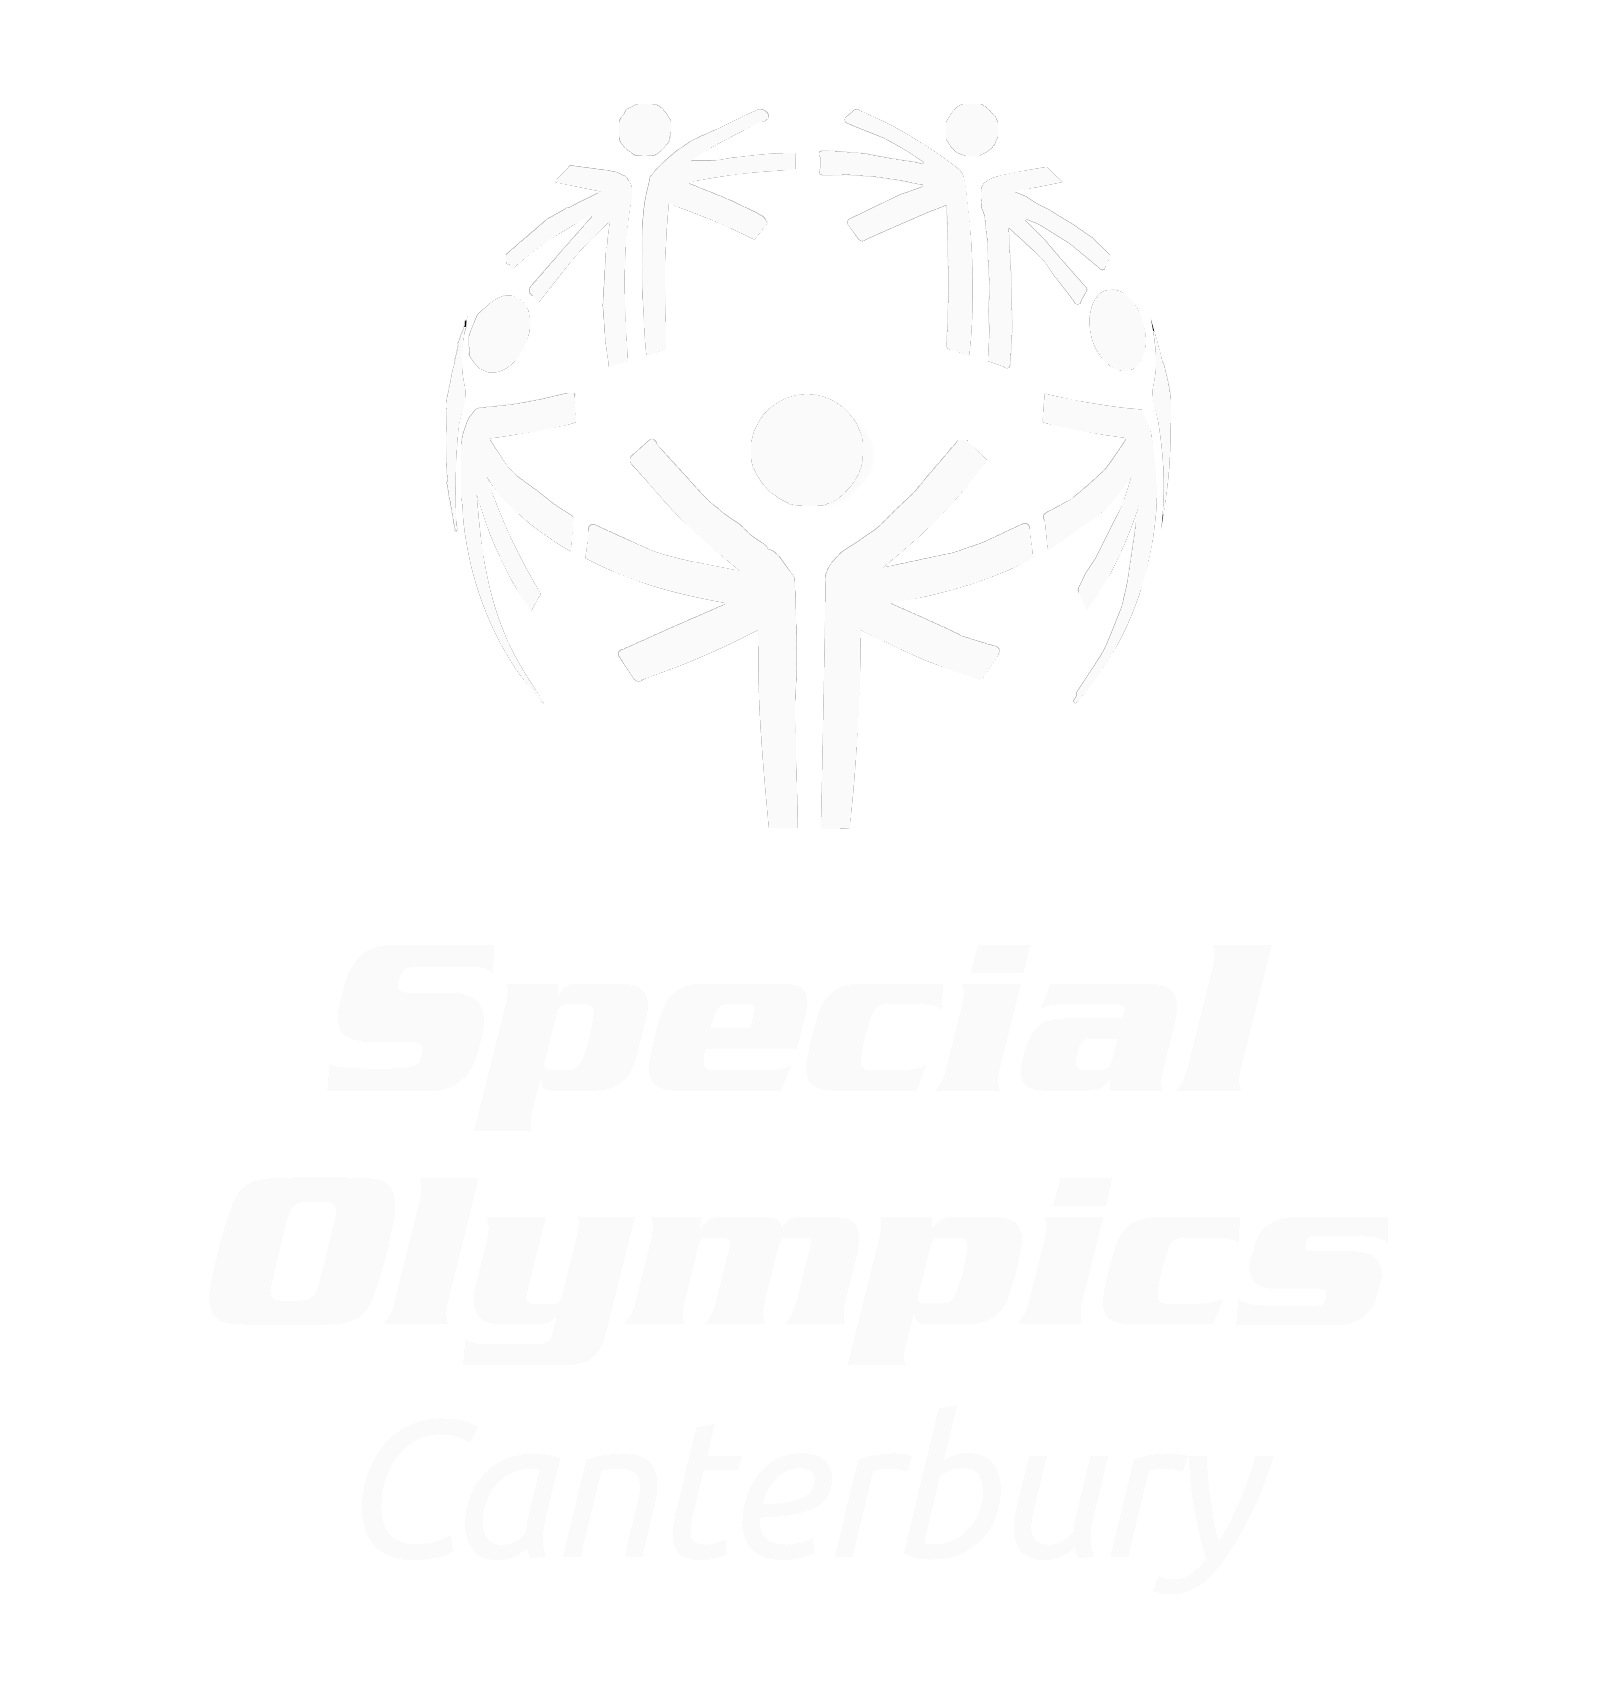 Special Olympics Canterbury